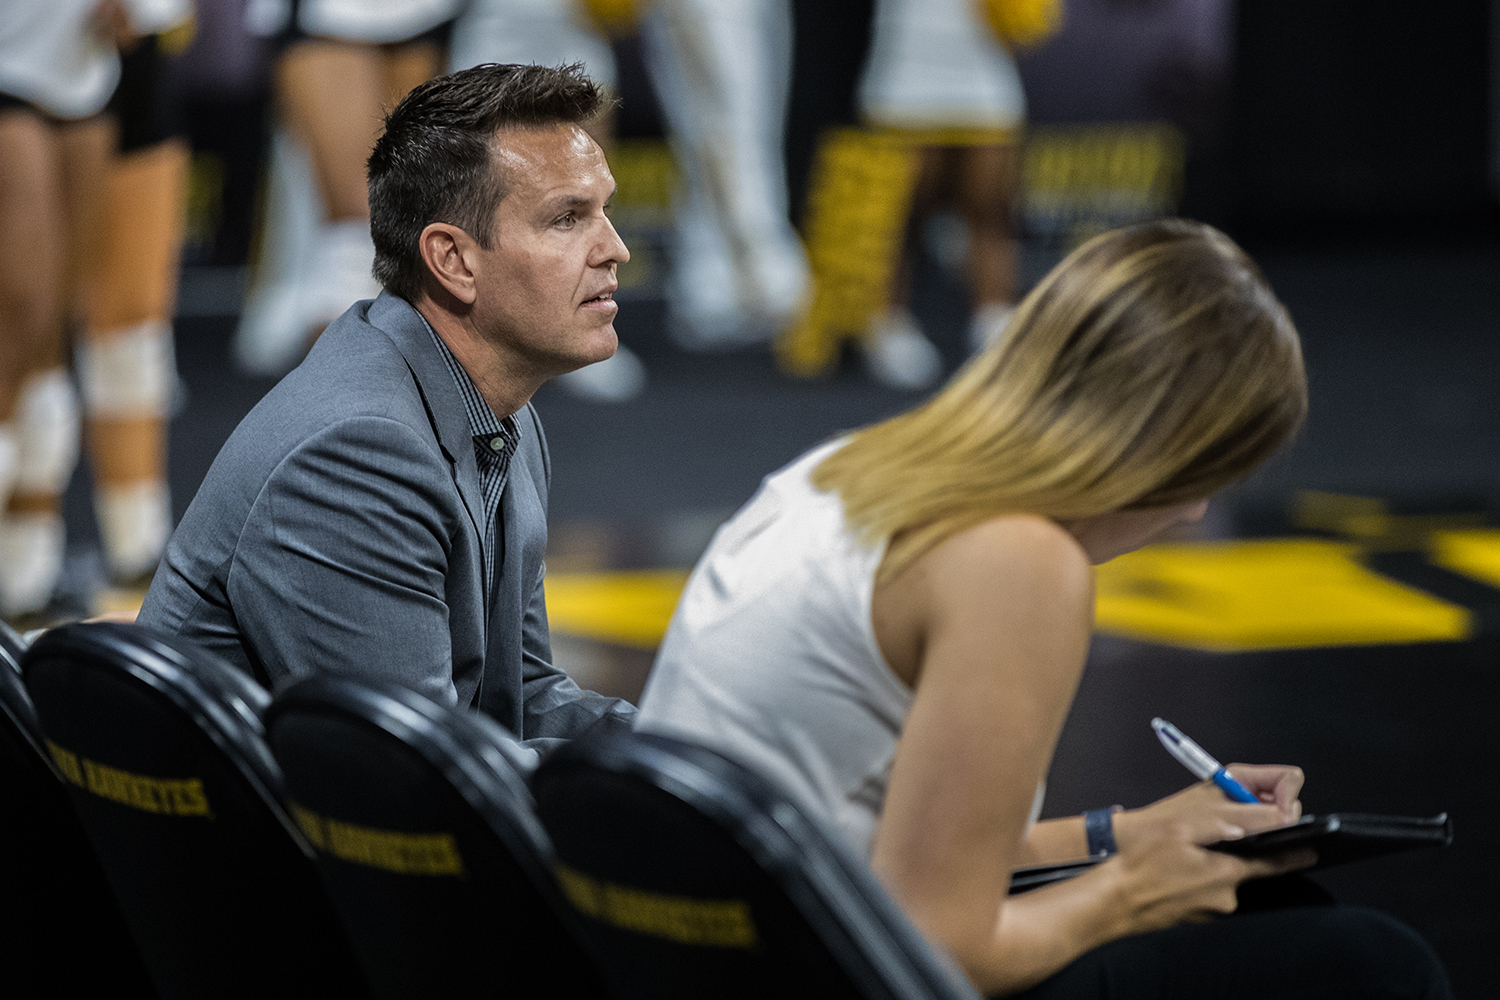 Iowa coach Bond Shymansky looks on during a volleyball match between Iowa and Michigan State on Friday, September 21, 2018. The Hawkeyes defeated the Spartans, 3 sets to 0. (Shivansh Ahuja/The Daily Iowan)